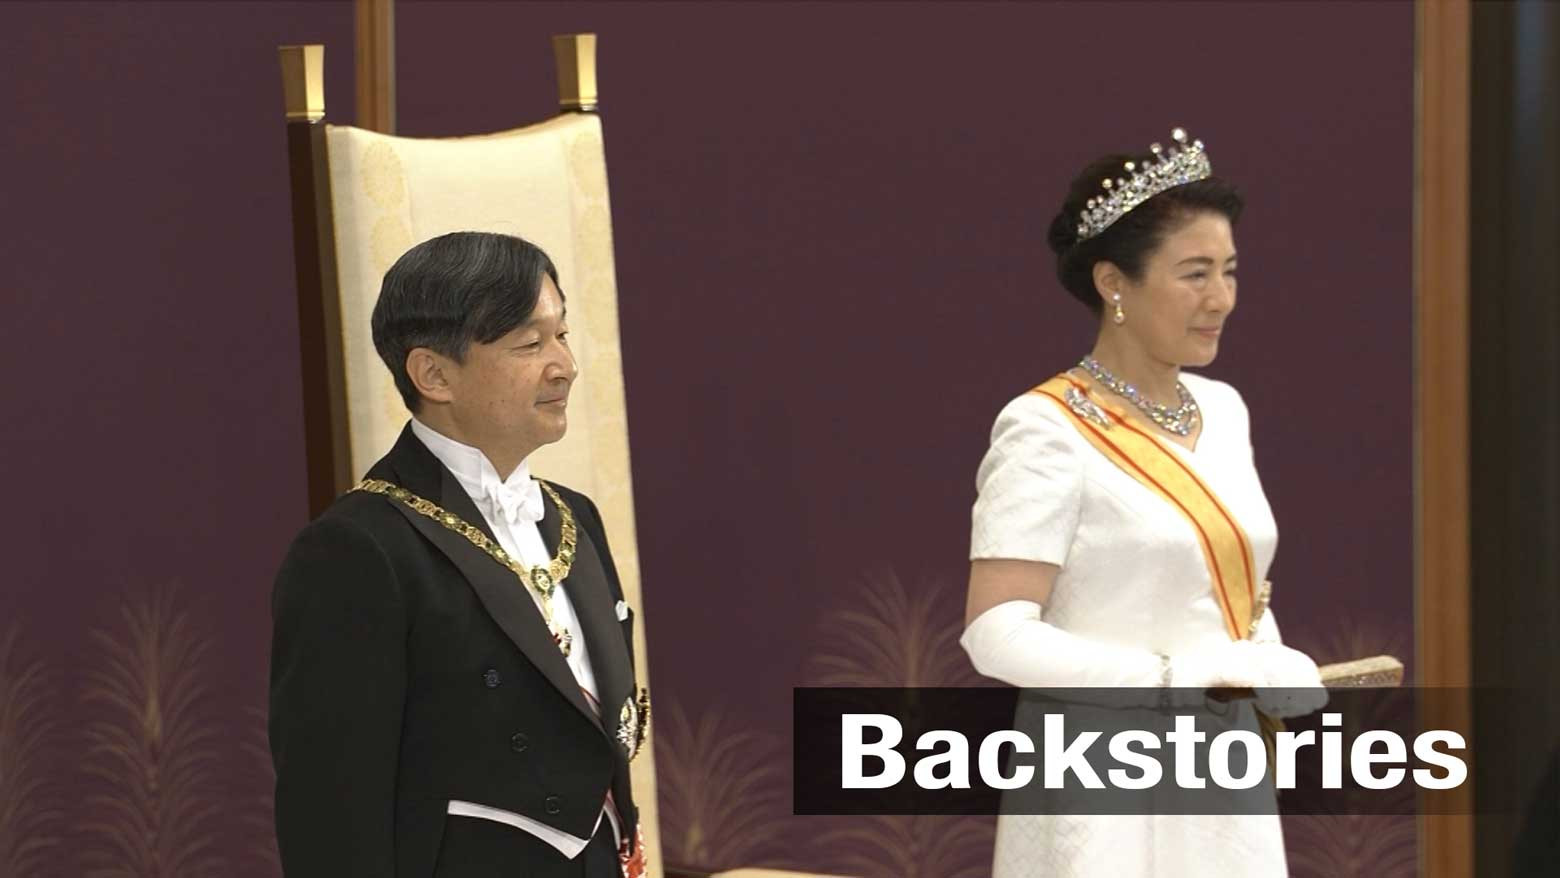 What to watch at the Emperor's enthronement ceremonies